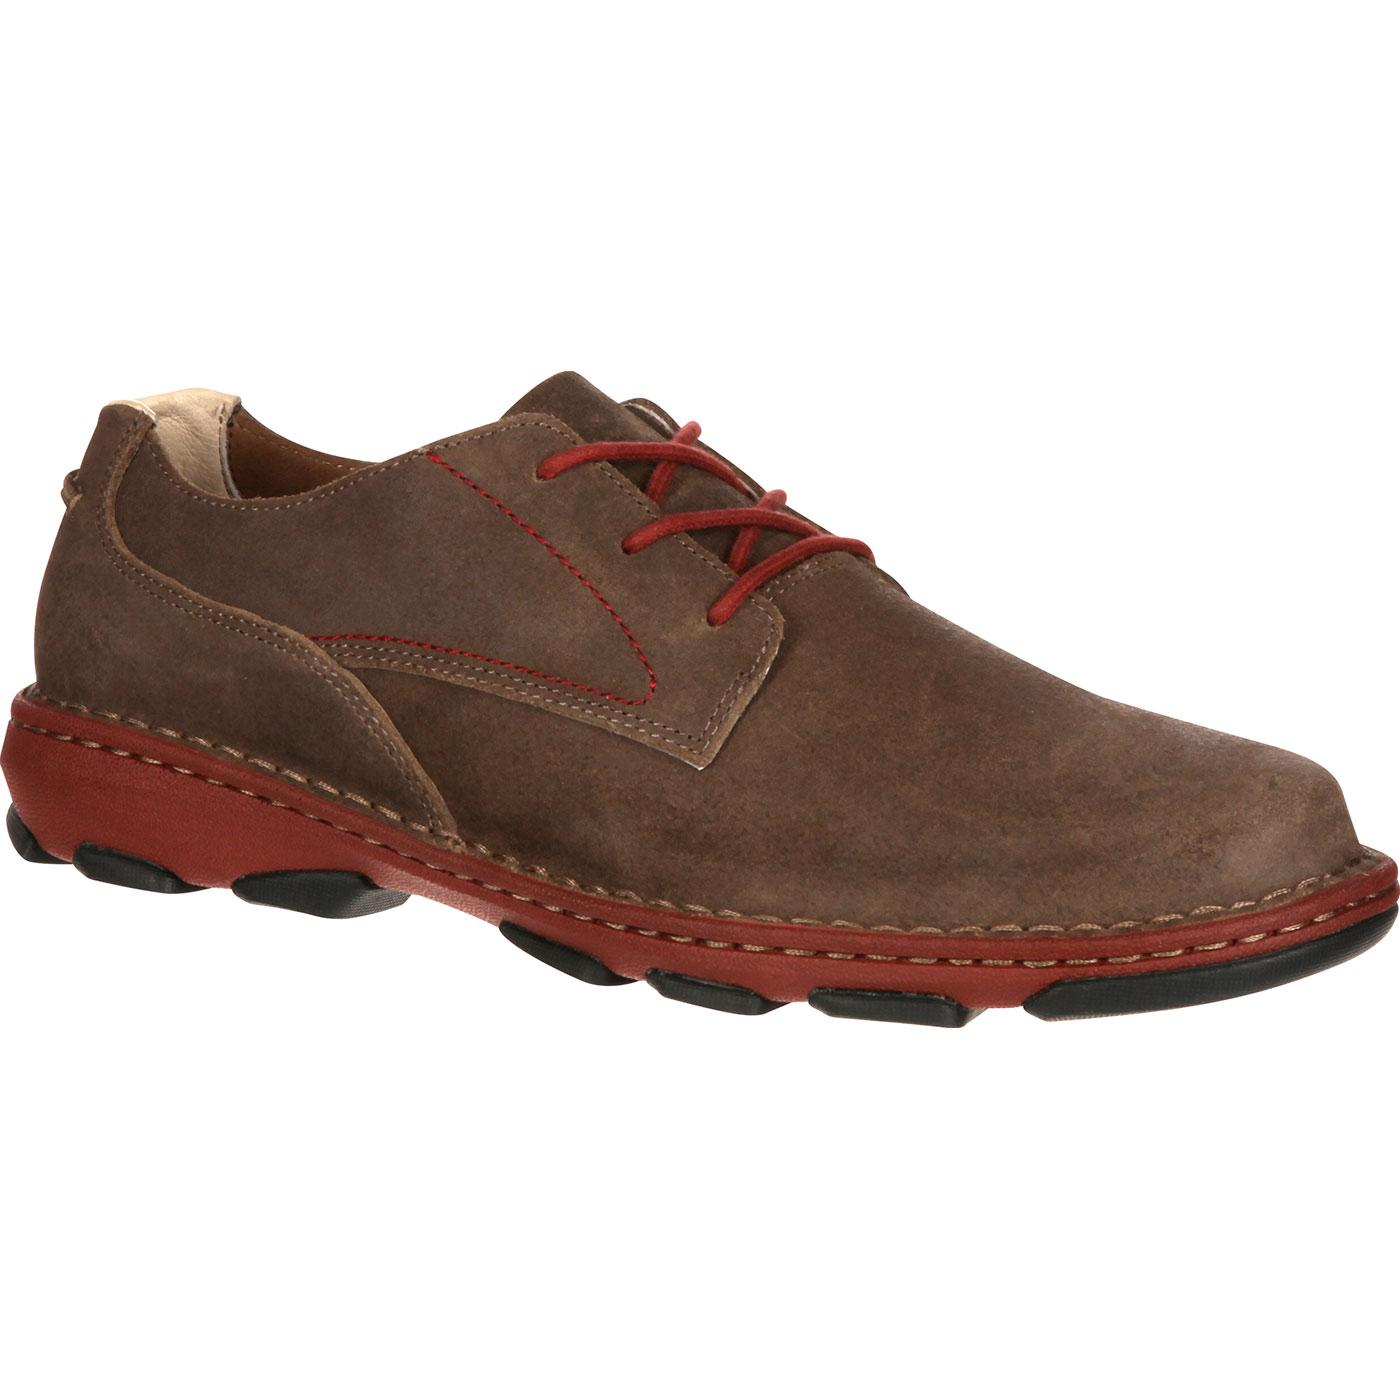 e114715622 Rocky Cruiser Casual - Men s Brown Leather Oxford Shoes